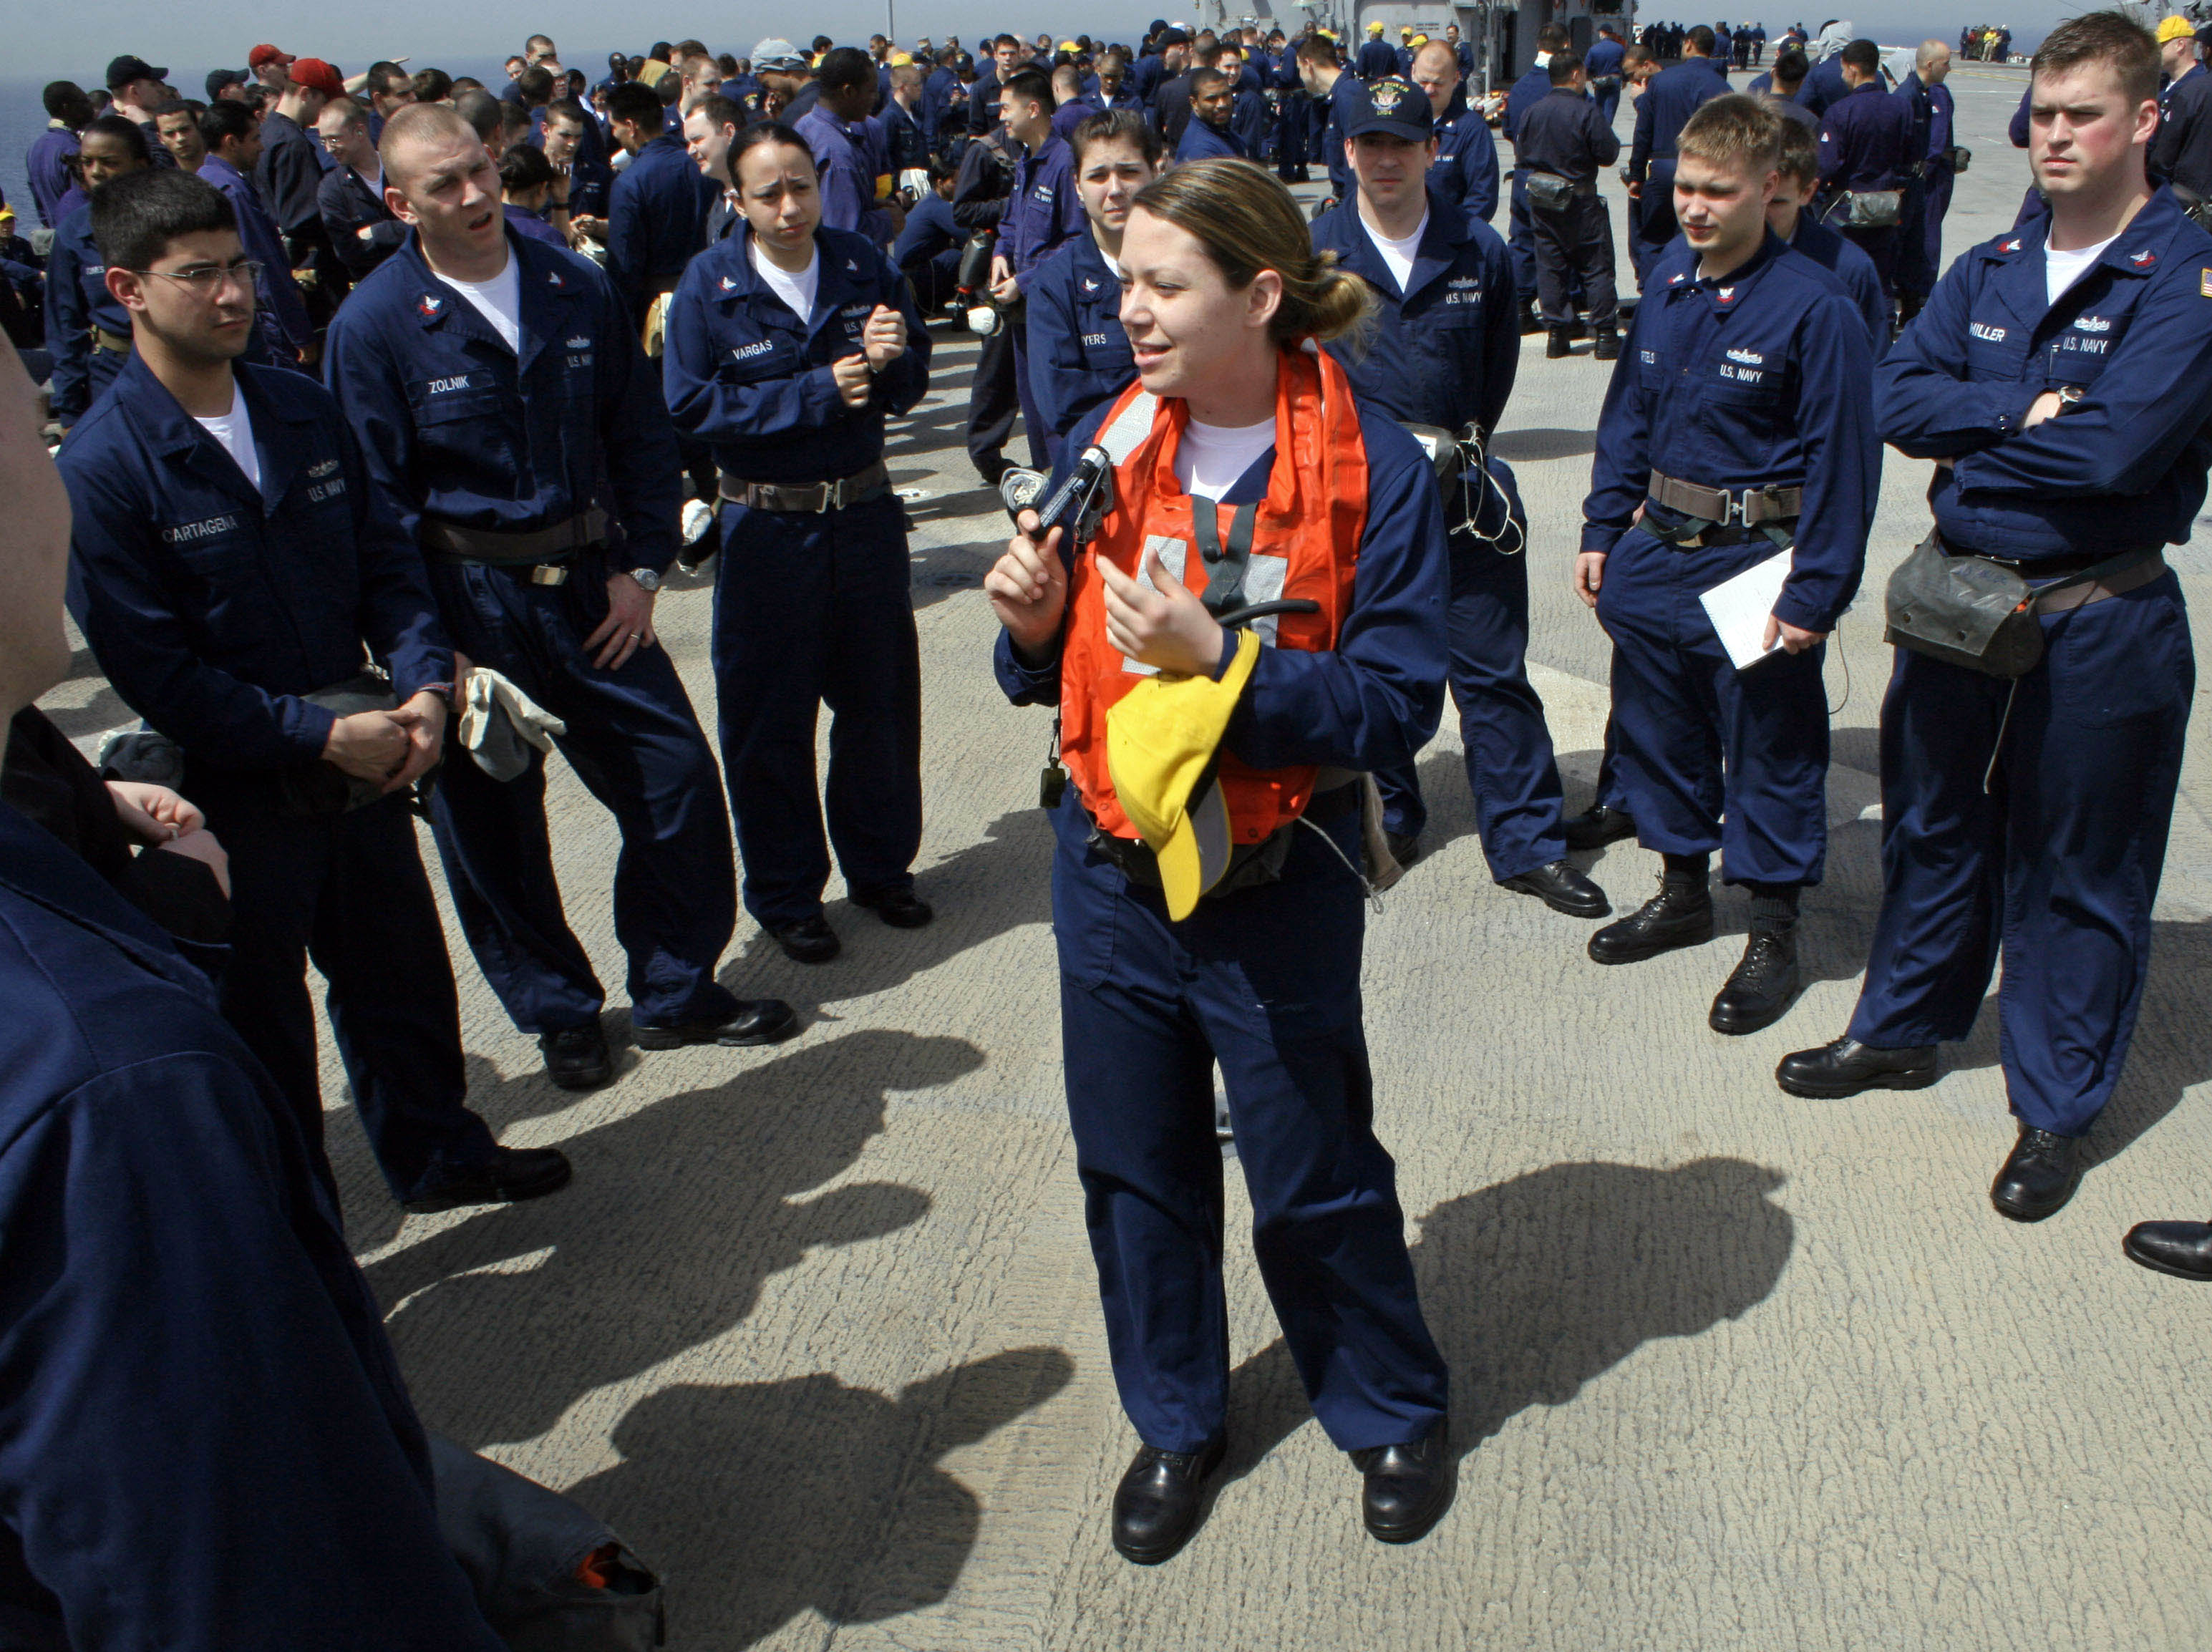 fileus navy 070327 n 1328s 002 intelligence specialist 2nd class jessica bacak assigned to the amphibious assault ship uss boxer lhd 4 instructs a group navy intelligence specialist